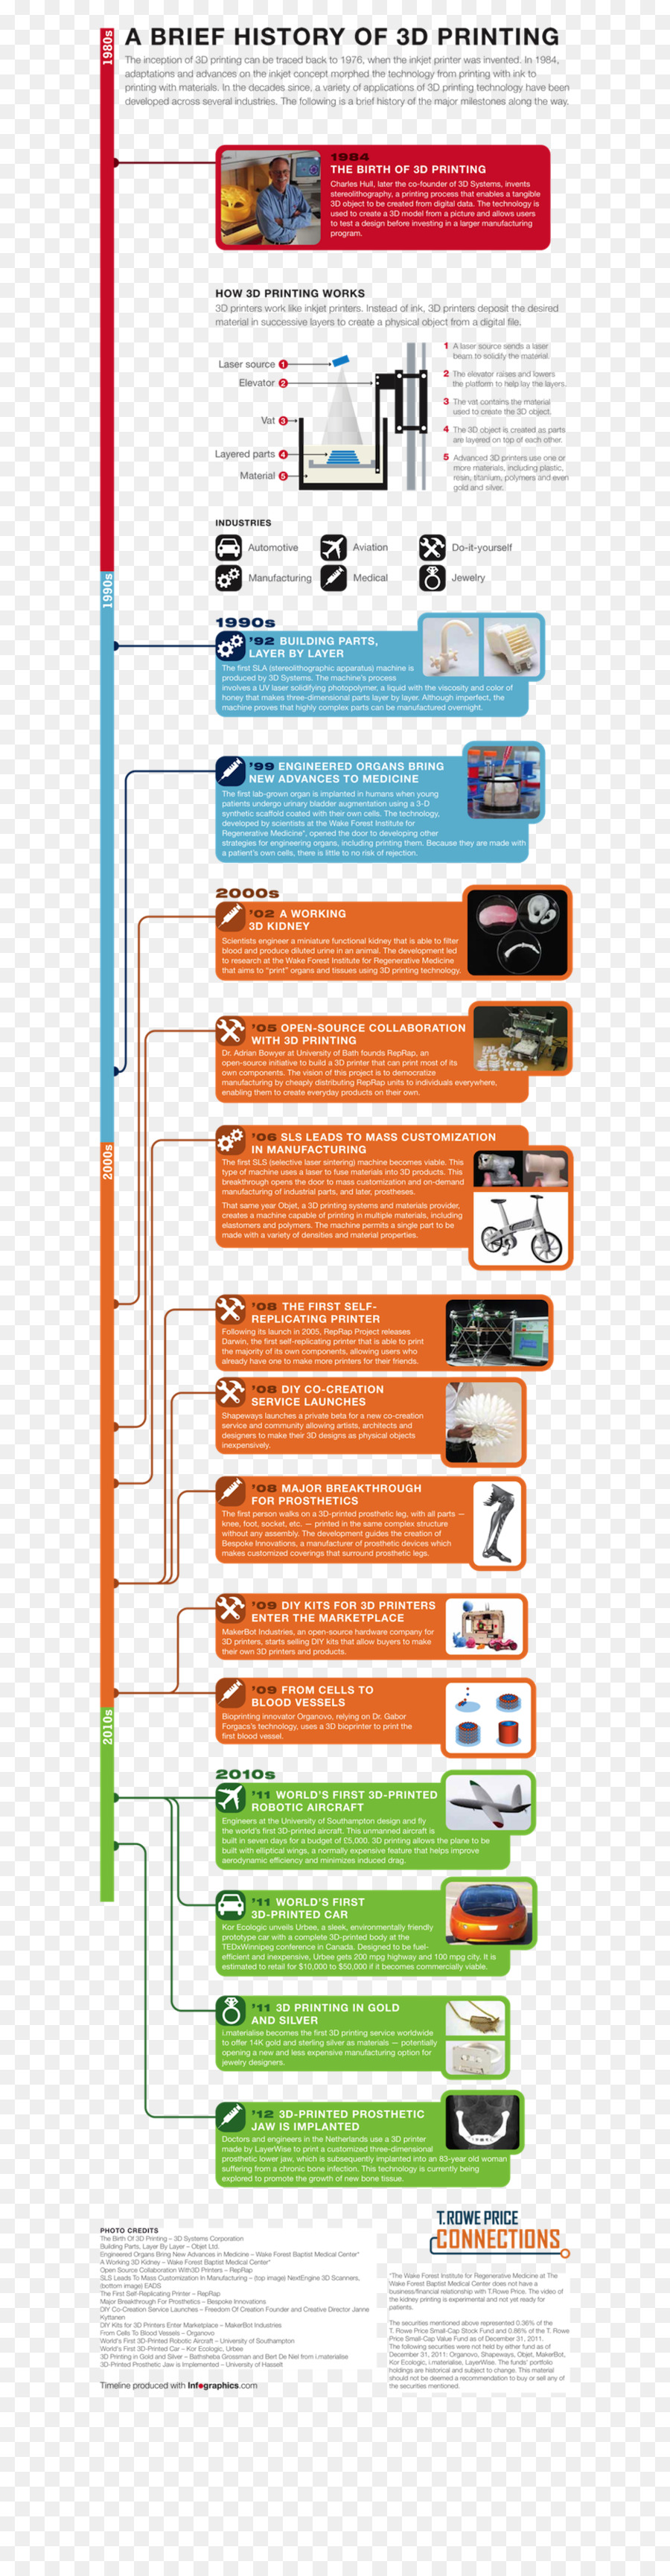 3D printing Infographic Rapid prototyping 3D Systems